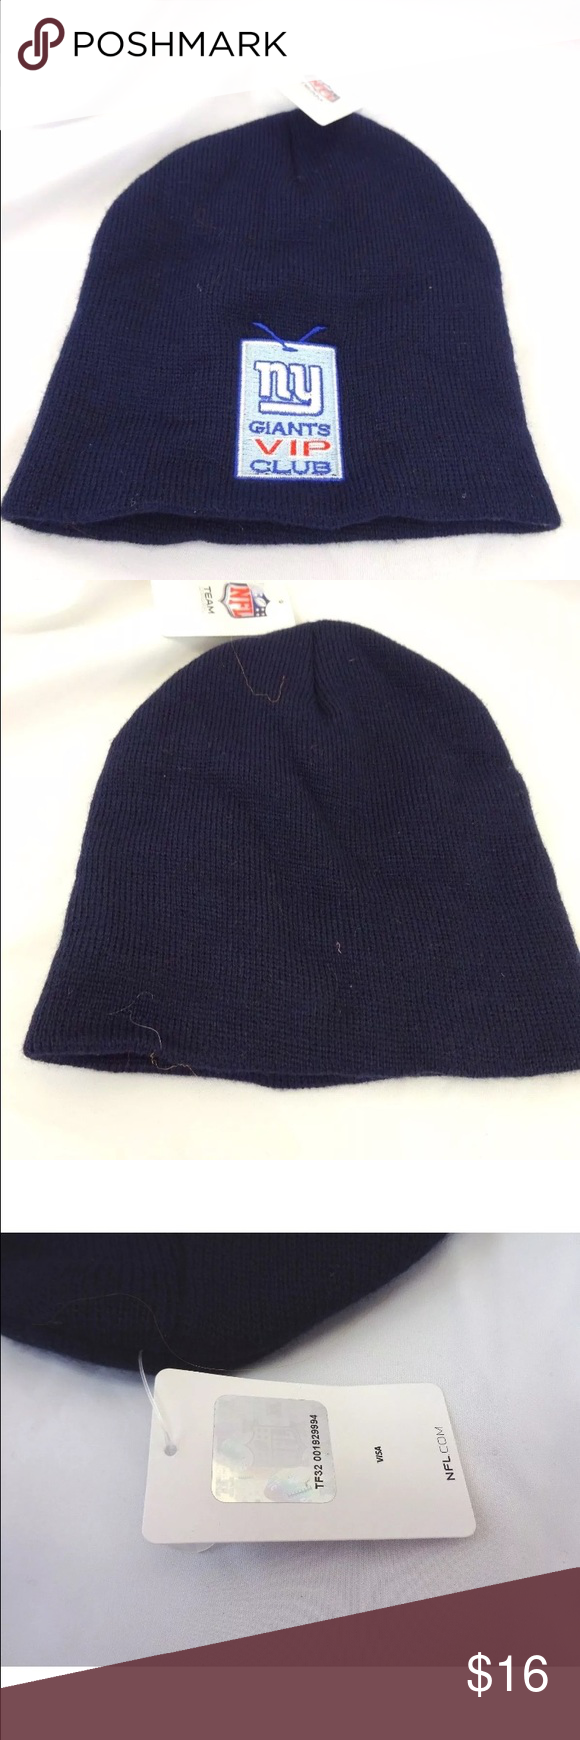 New York Giants Beanie Hat Nwt New York Giants Vip Club Hat Brand New With Tags No Visible Imperfections 100 Acrylic On Fashion Fashion Trends Clothes Design